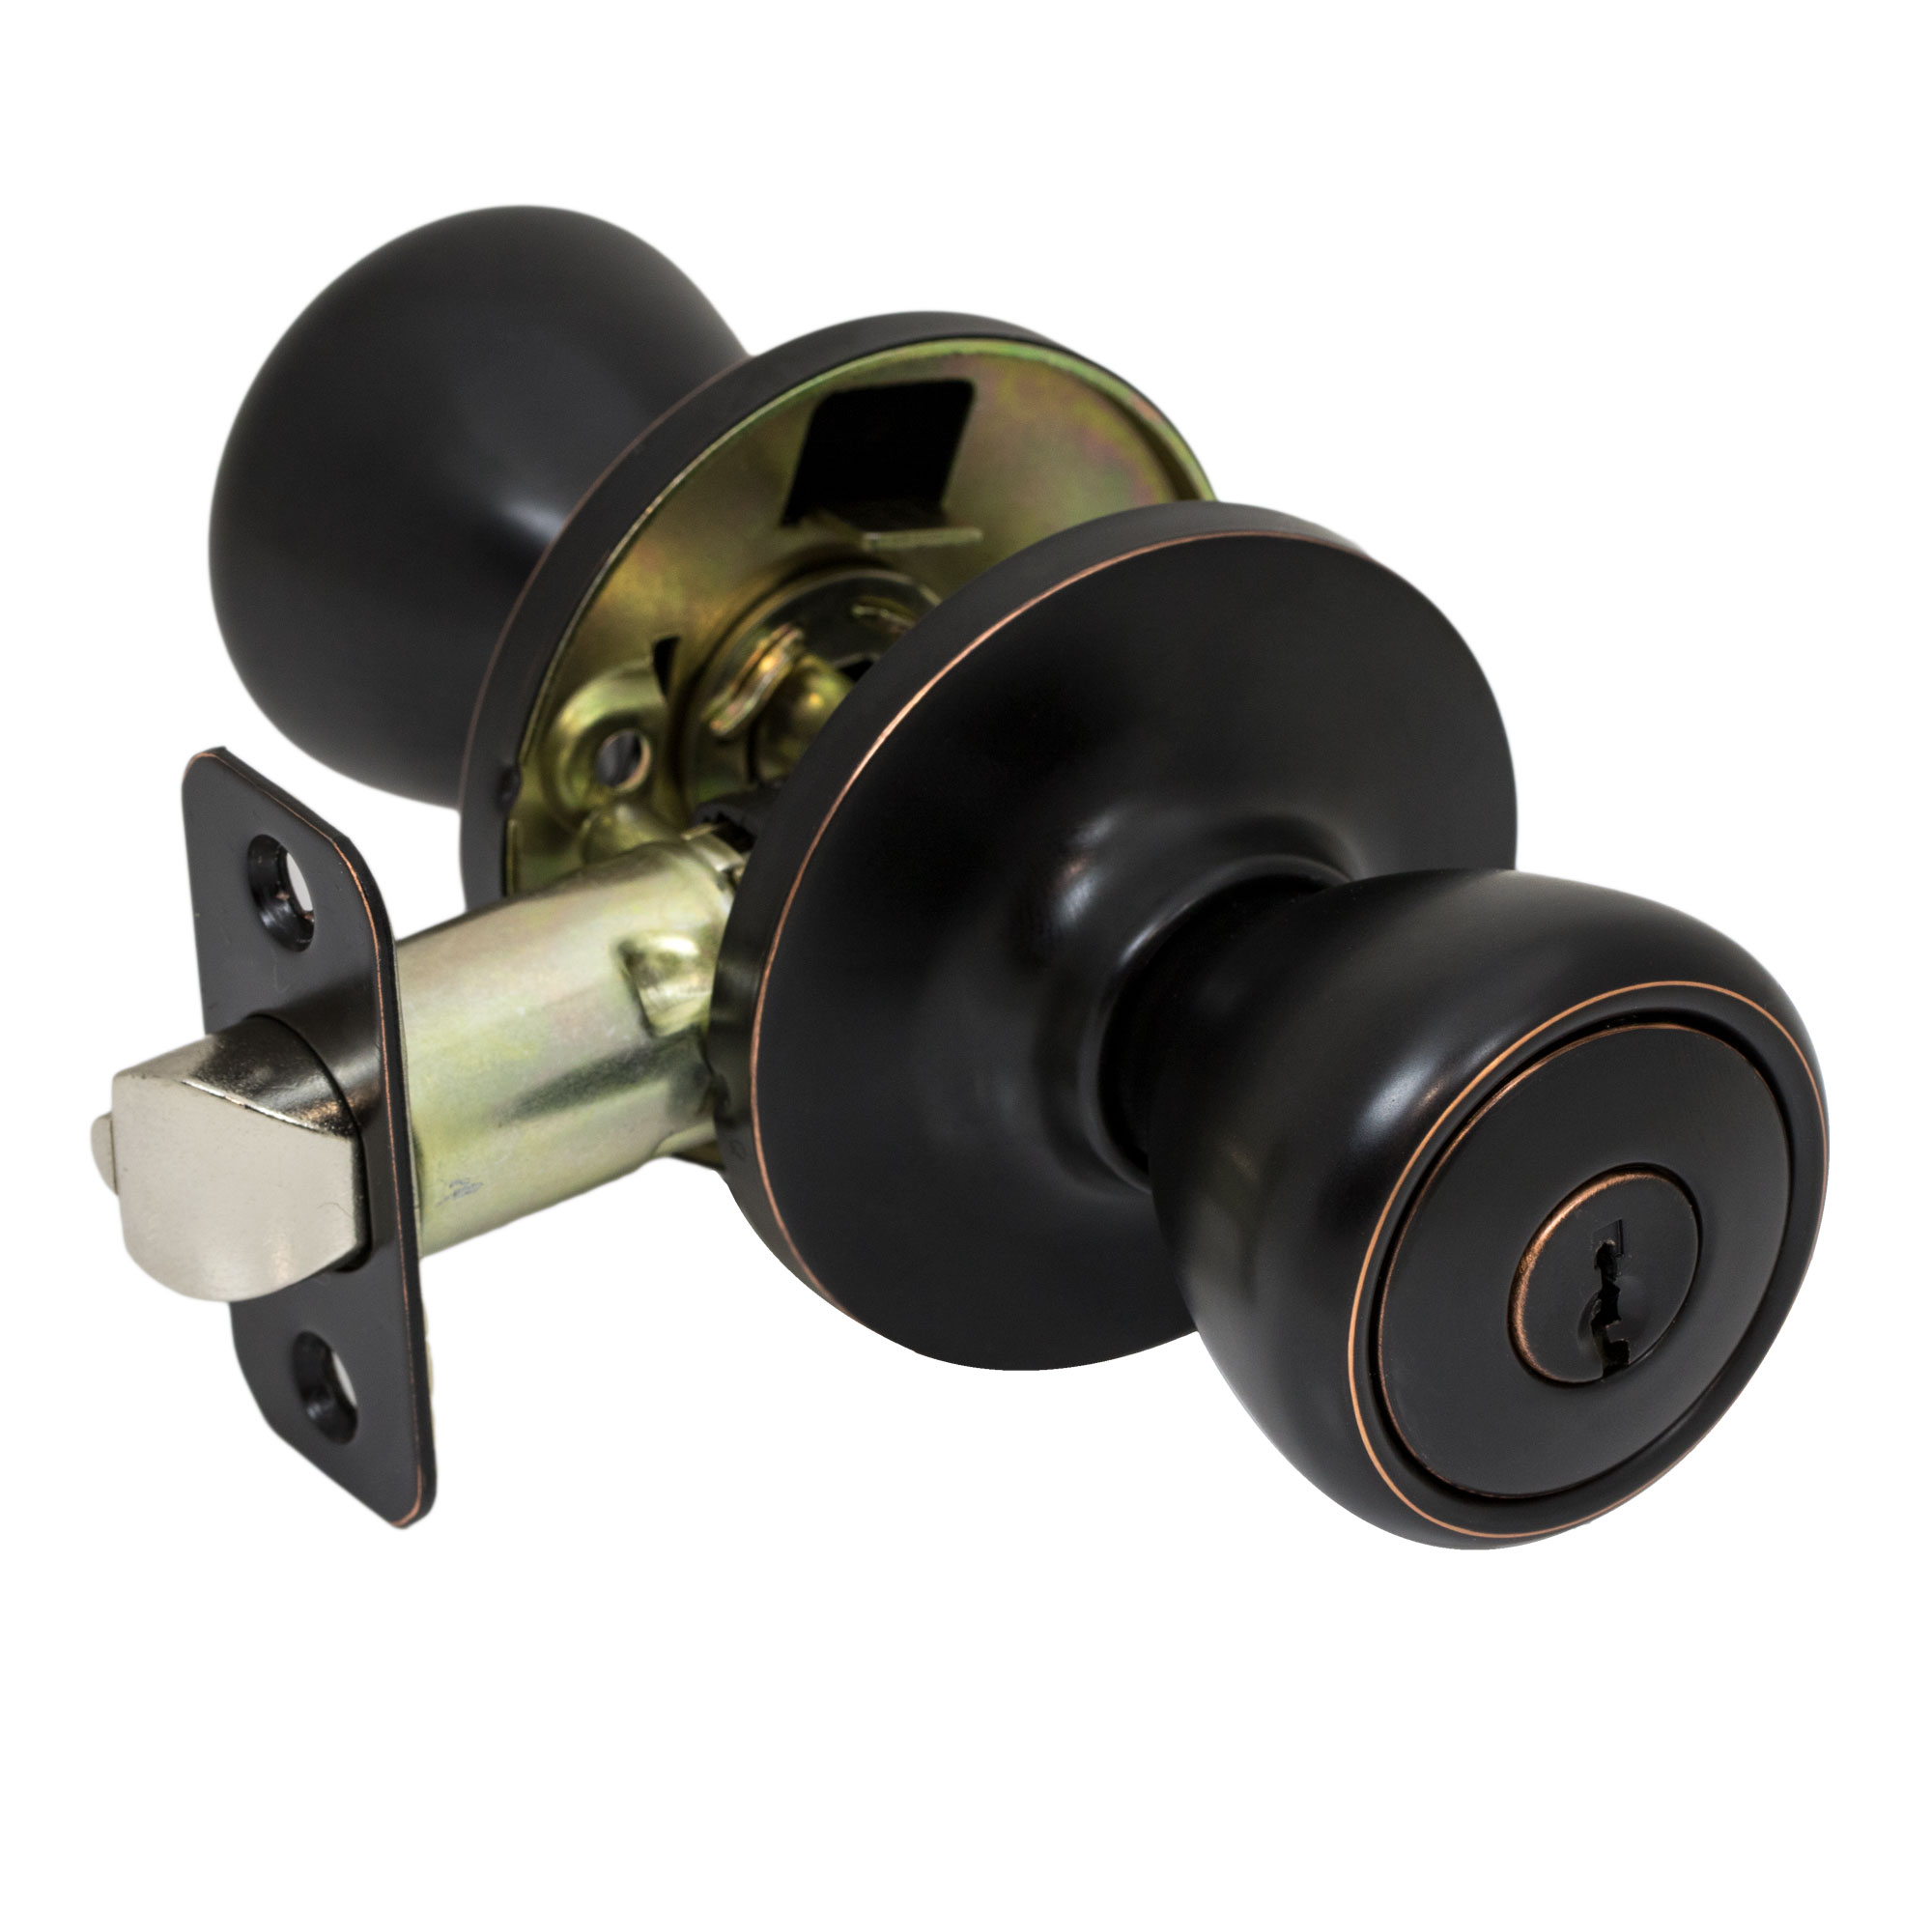 Marvelous Pro Grade Classic Keyed Entry Door Knob Handle Lockset, Oil Rubbed Bronze